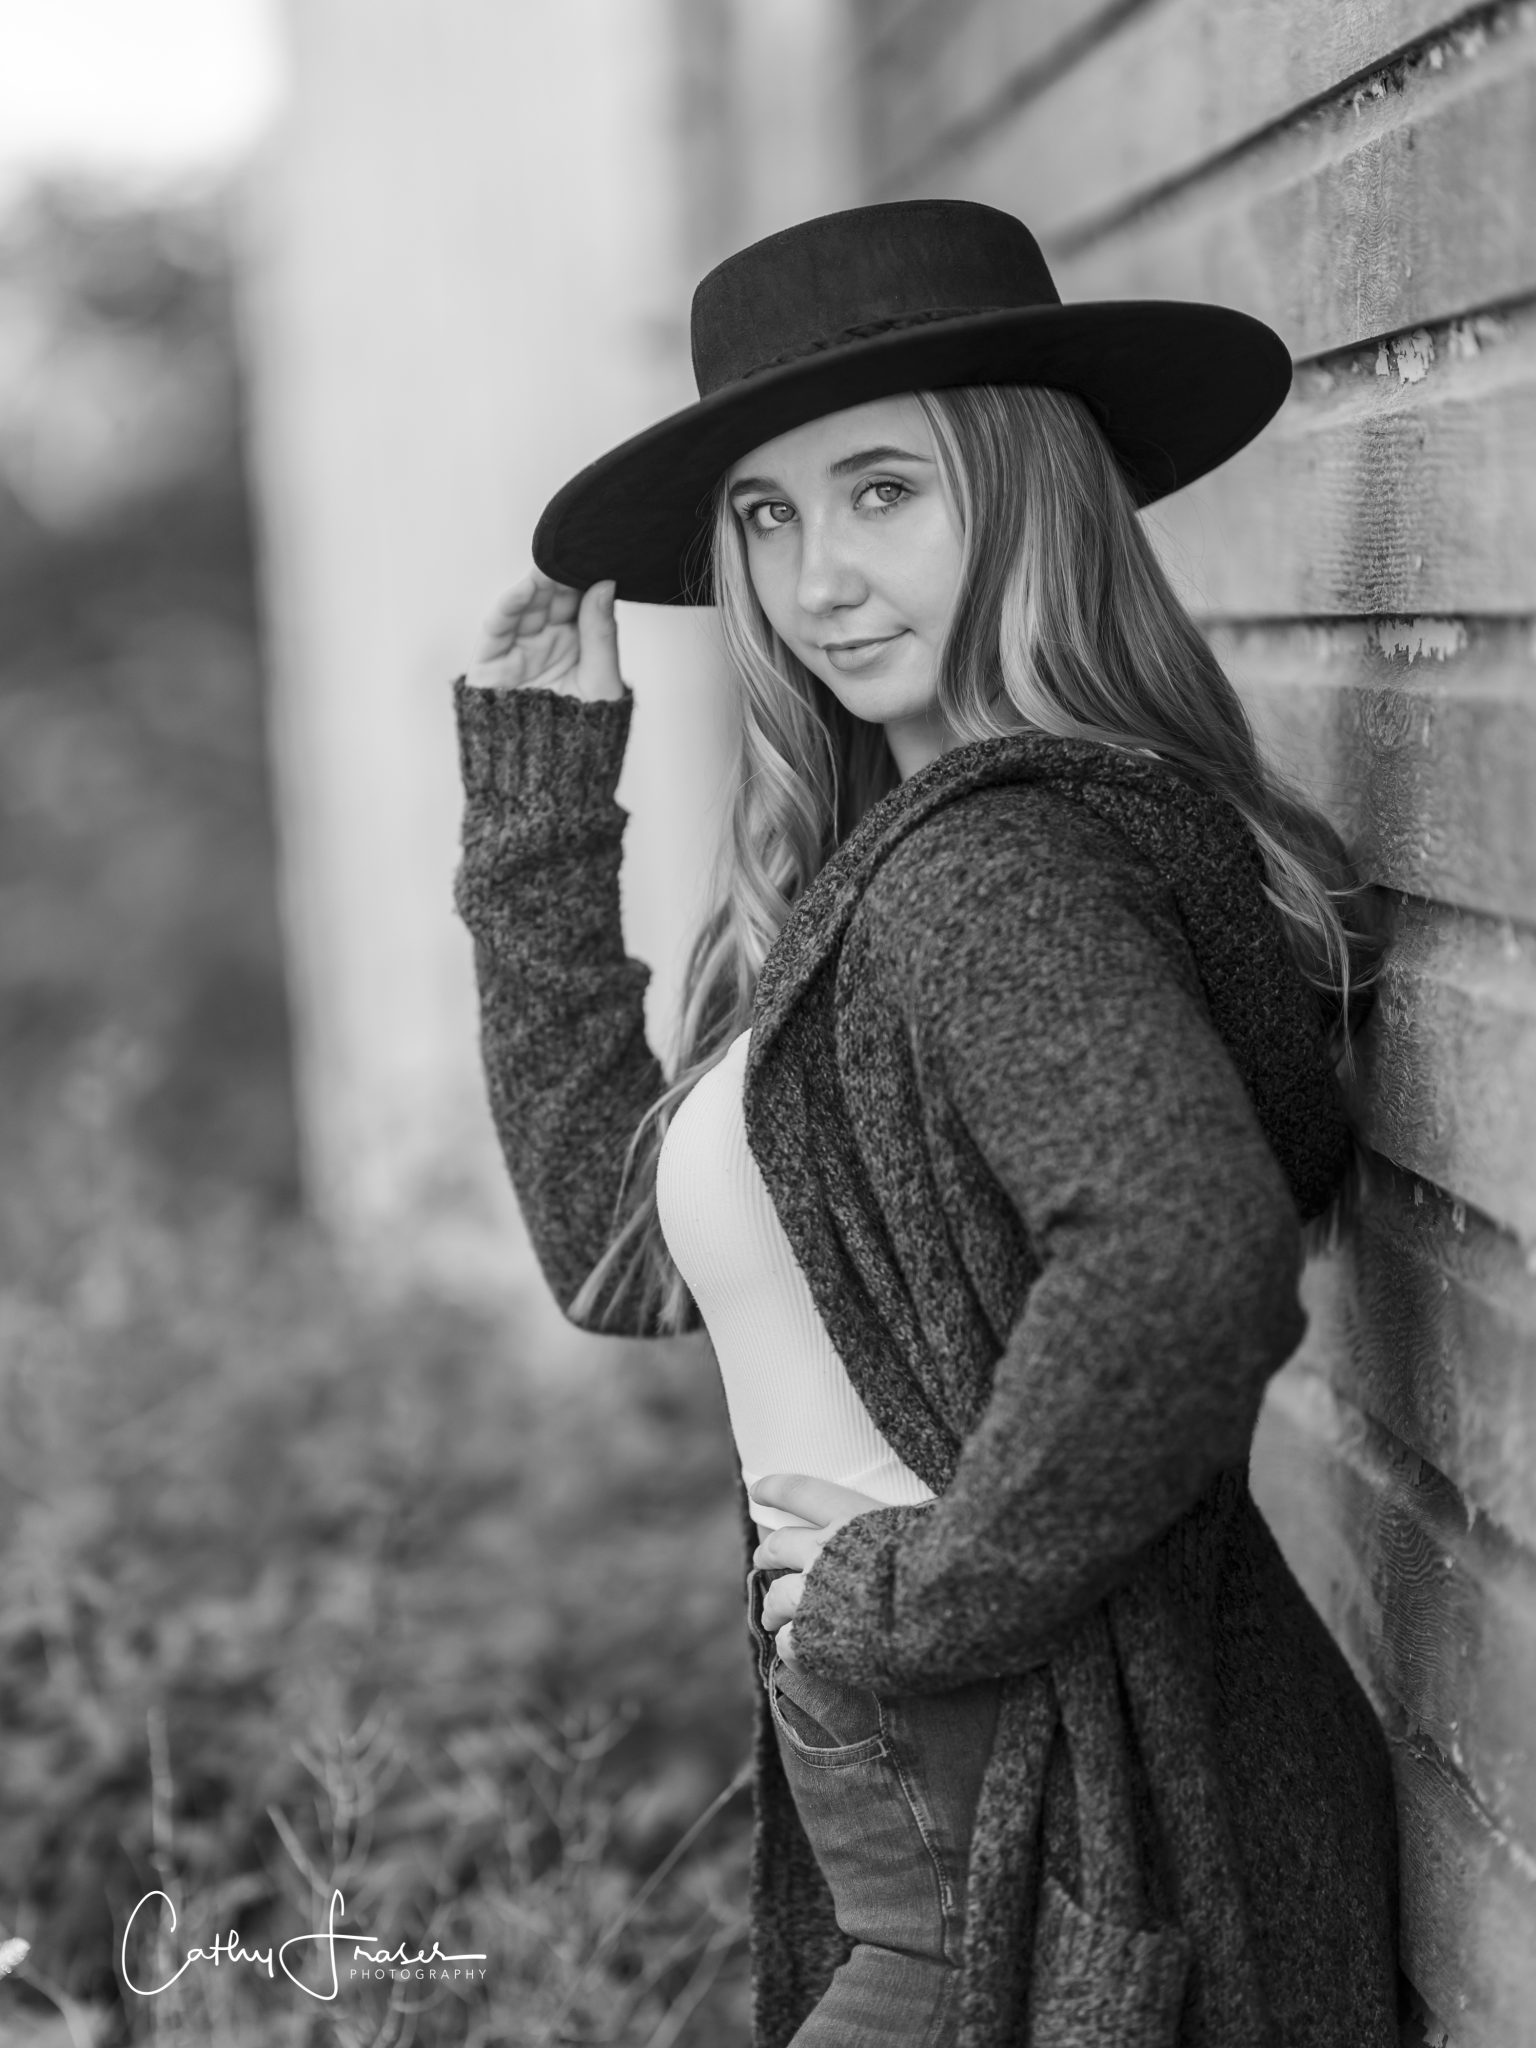 Black & white professional photo, natural light, girl wearing a black wide brimmed hat, sweater , Seneca, New York, girl on fence, leaning on a barn